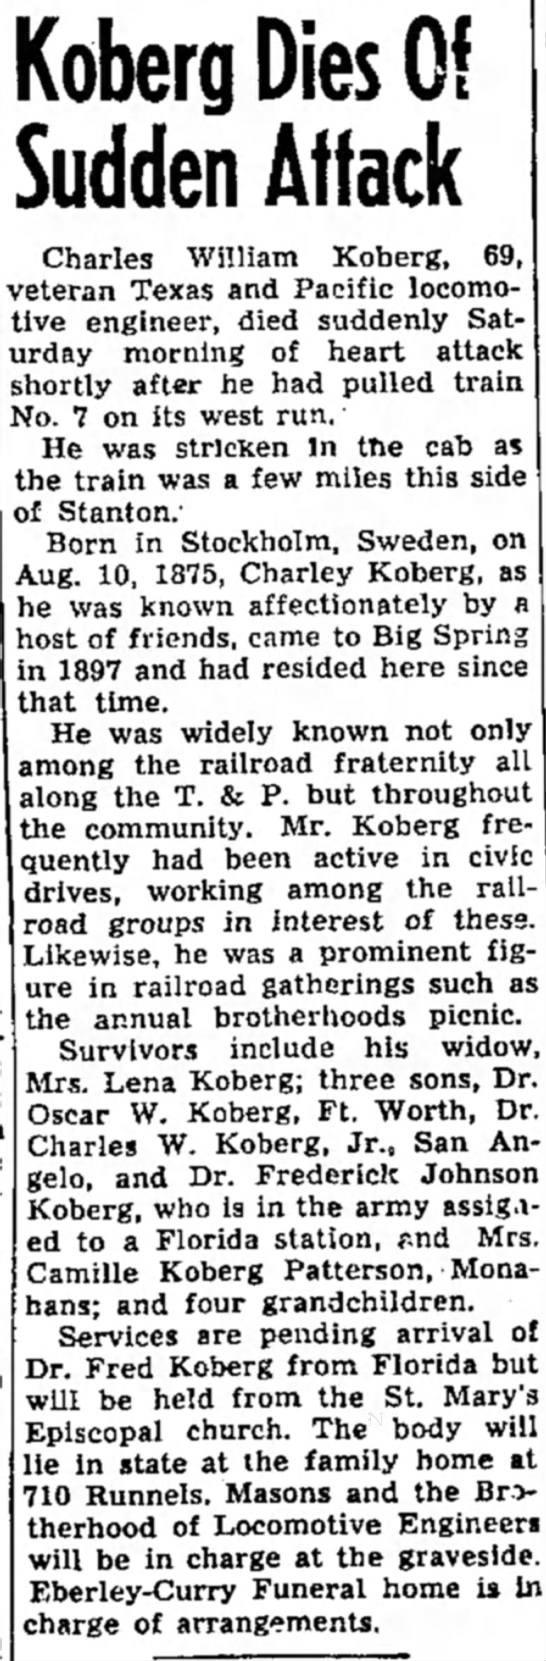 Charley Koberg obit - Koberg Dies Of Sudden Attack Charles William...